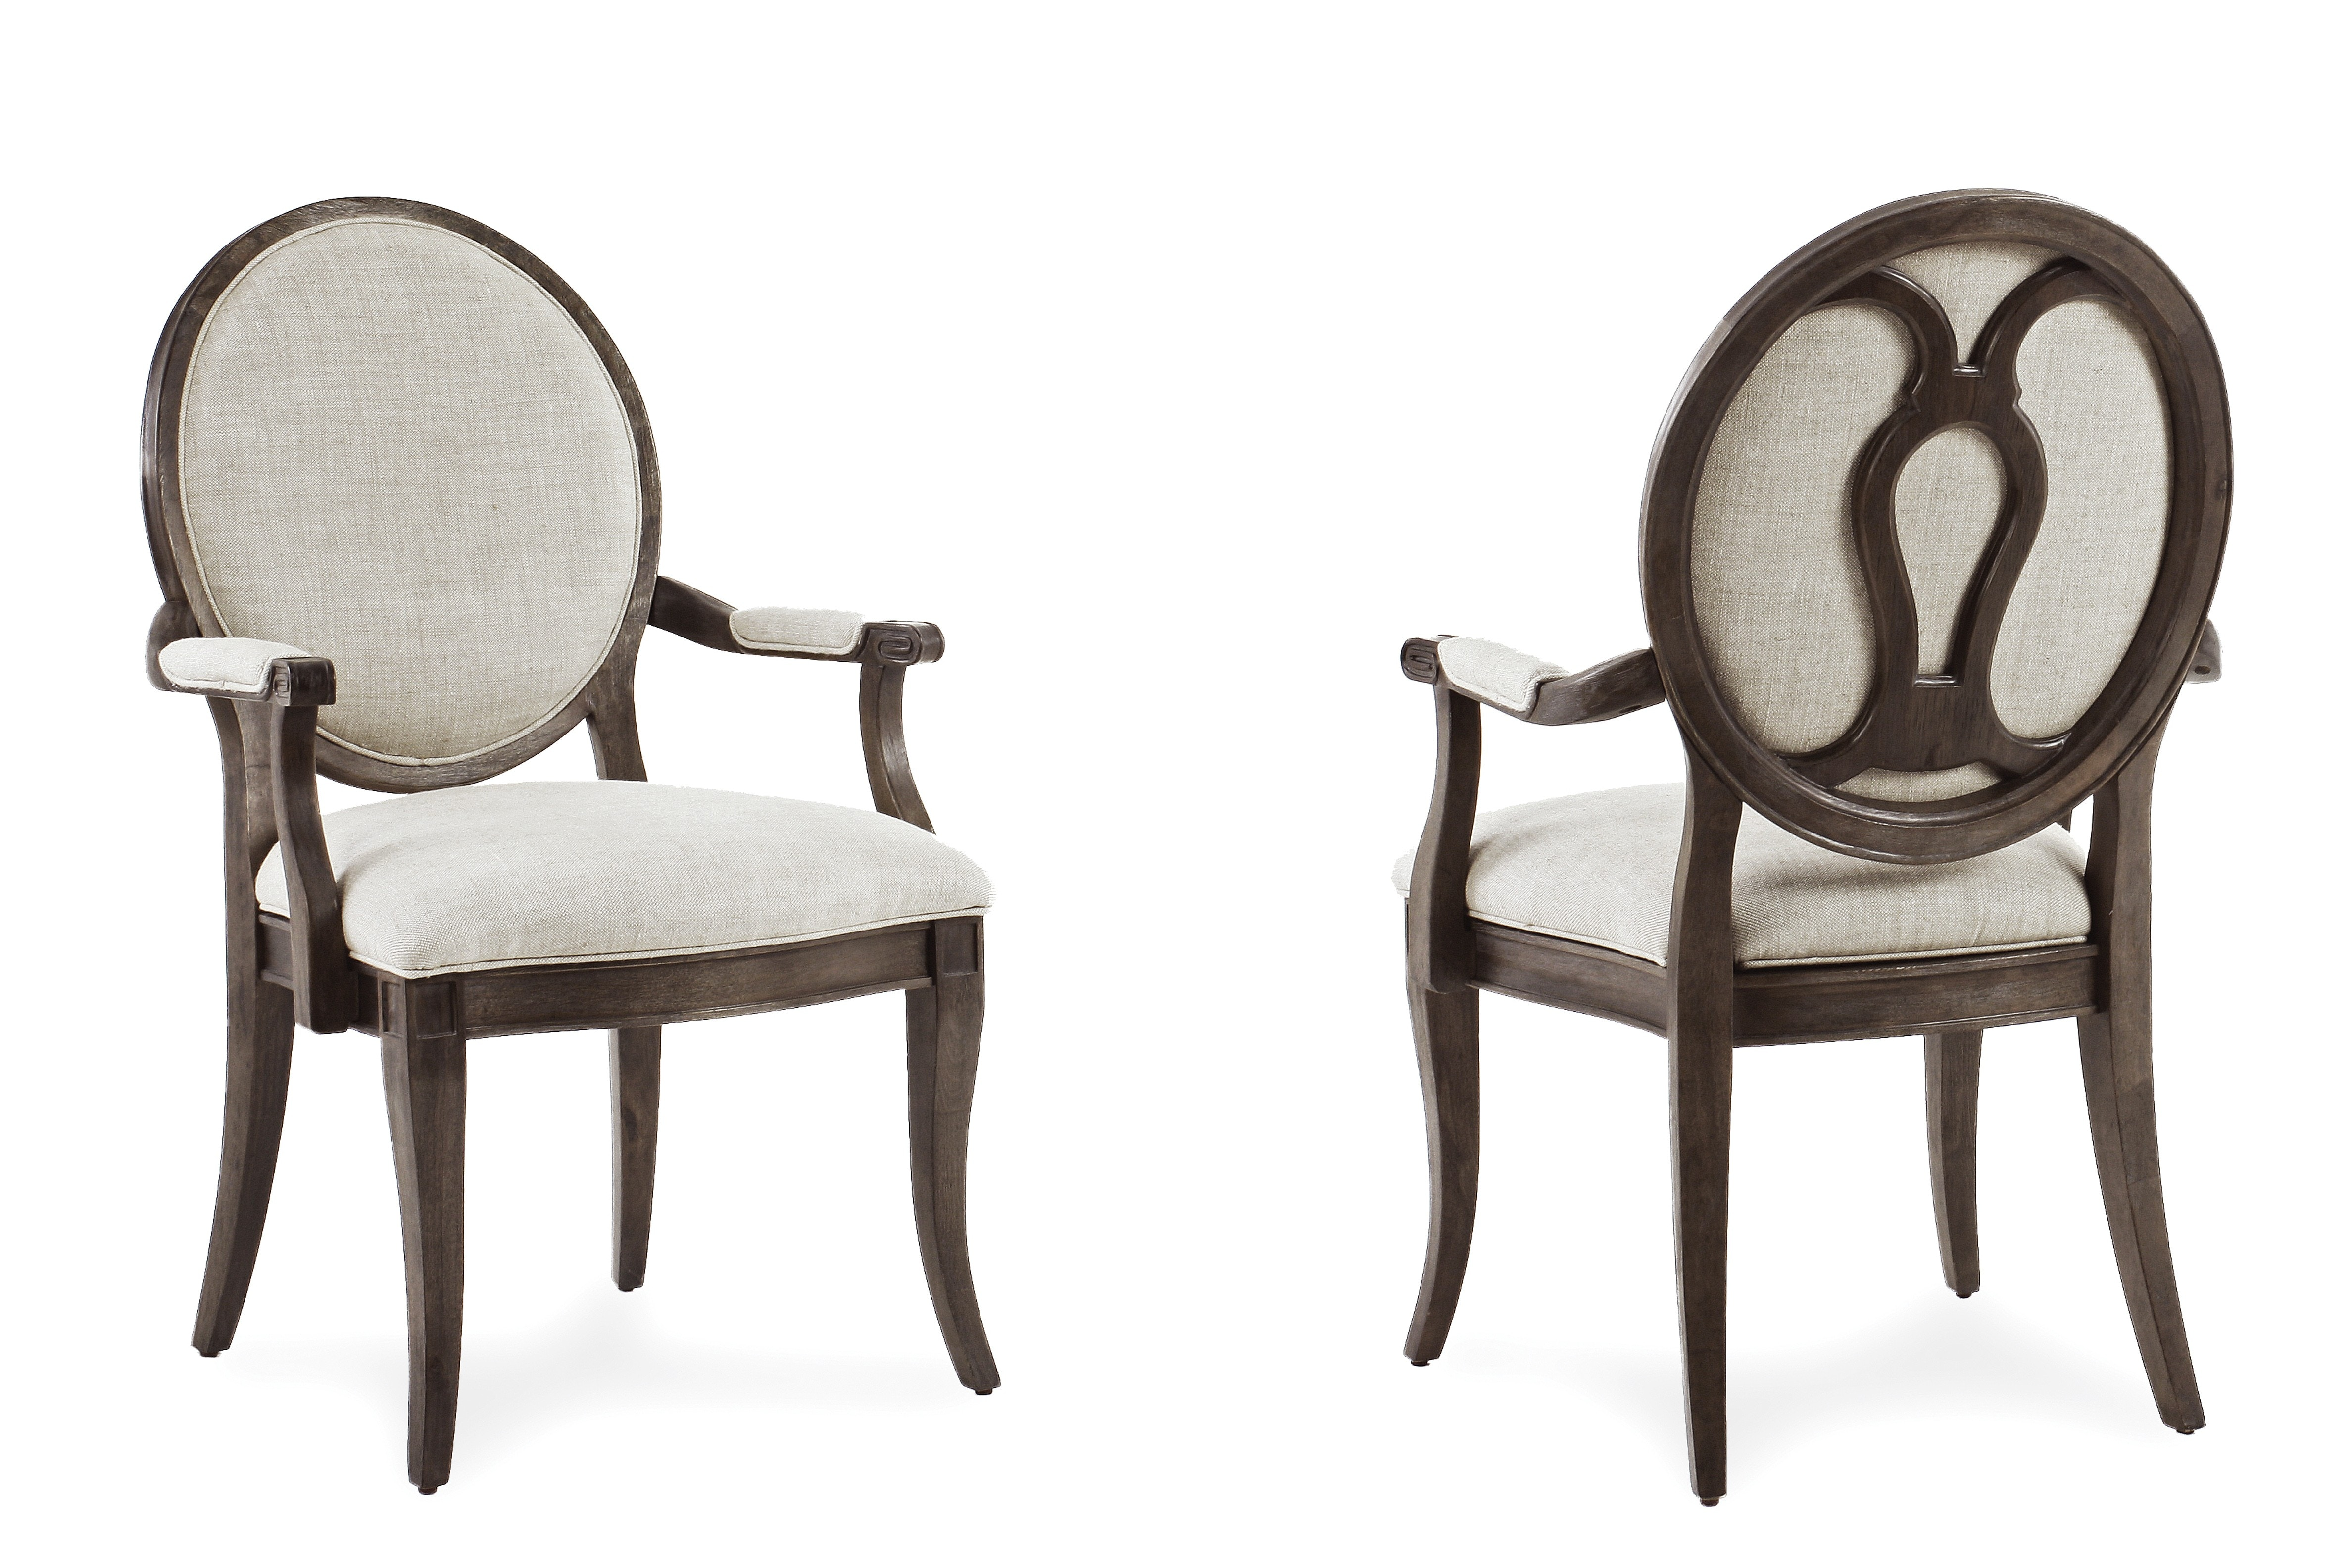 ART Furniture St. Germain Oval Back Side Chair 215202 1513